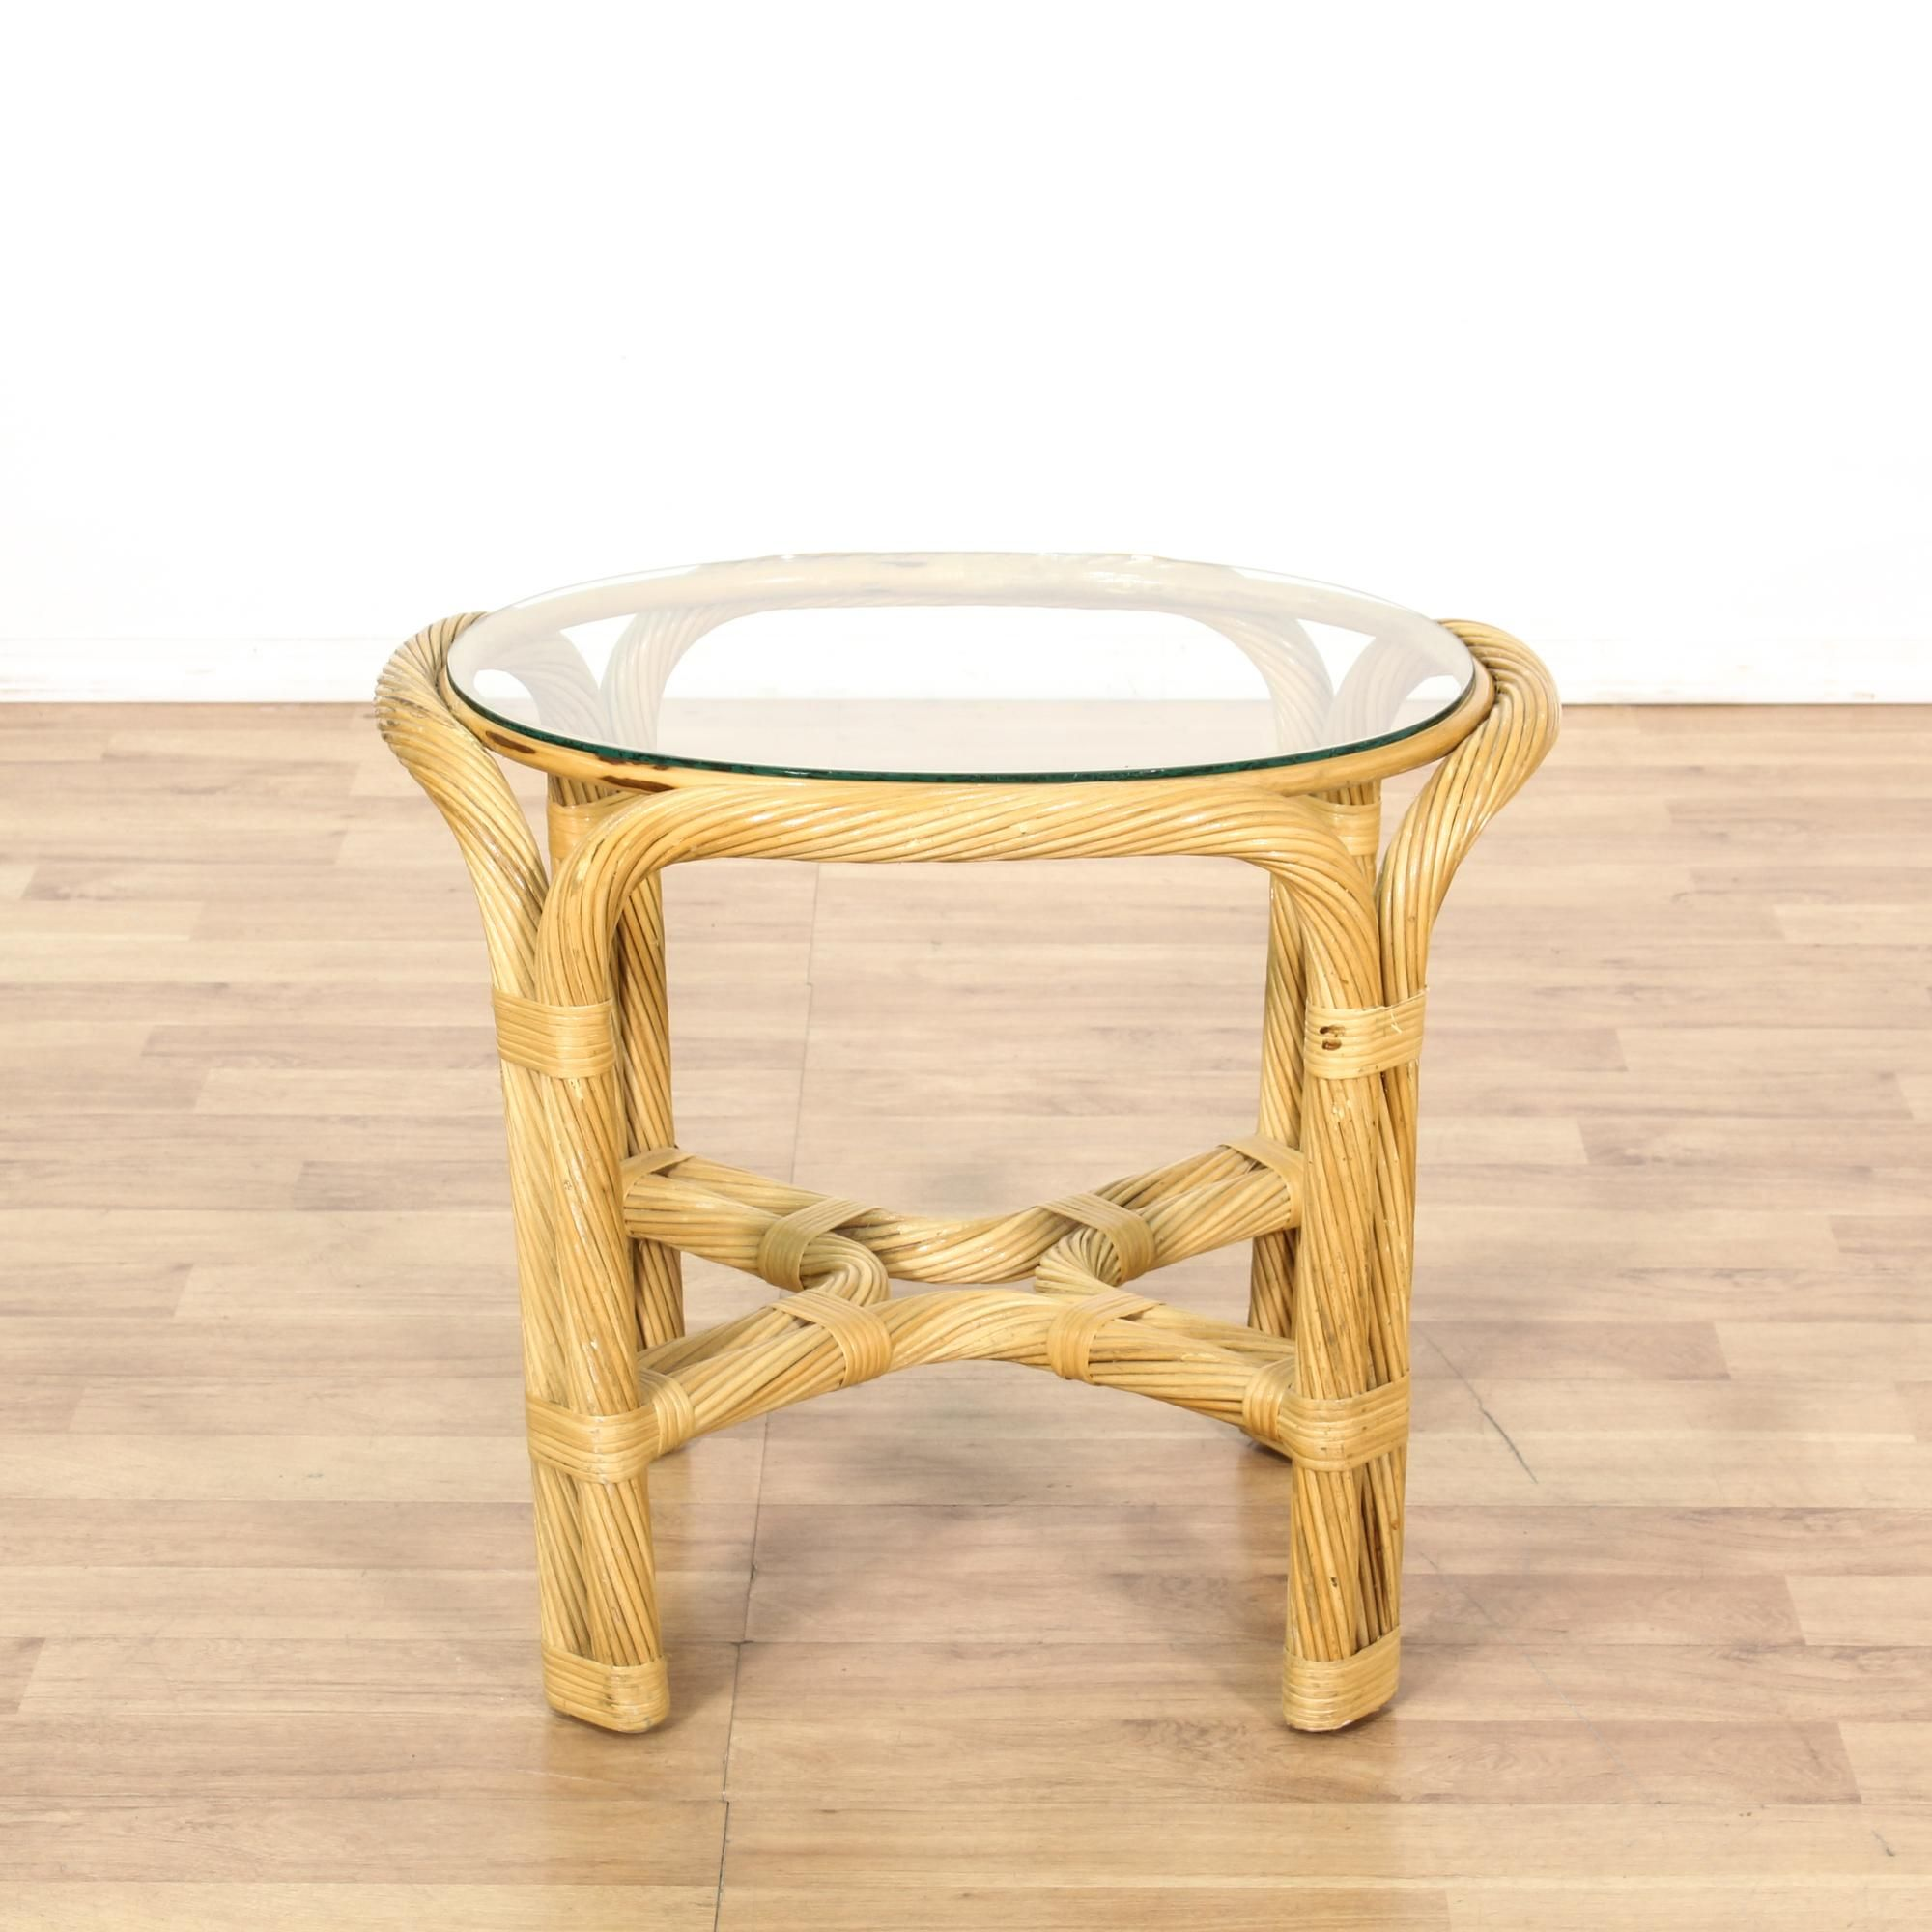 Furniture Legs San Diego small round wicker glass top end table | coastal style, furniture